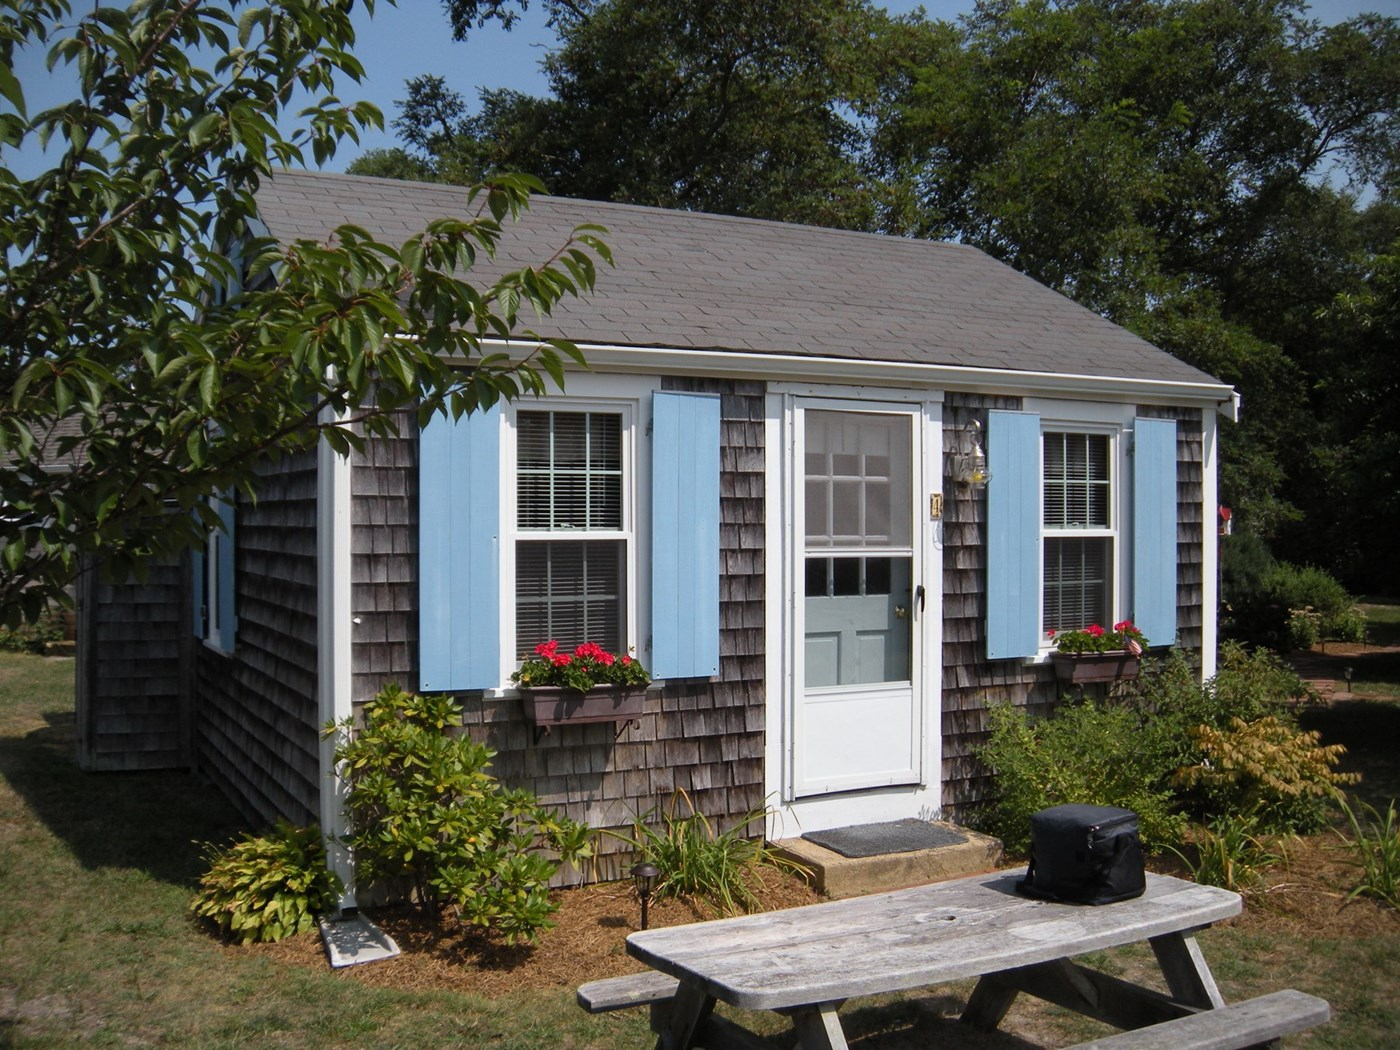 Marvelous Truro Vacation Rental Home In Cape Cod Ma 1 2 Mile To Beach Download Free Architecture Designs Sospemadebymaigaardcom